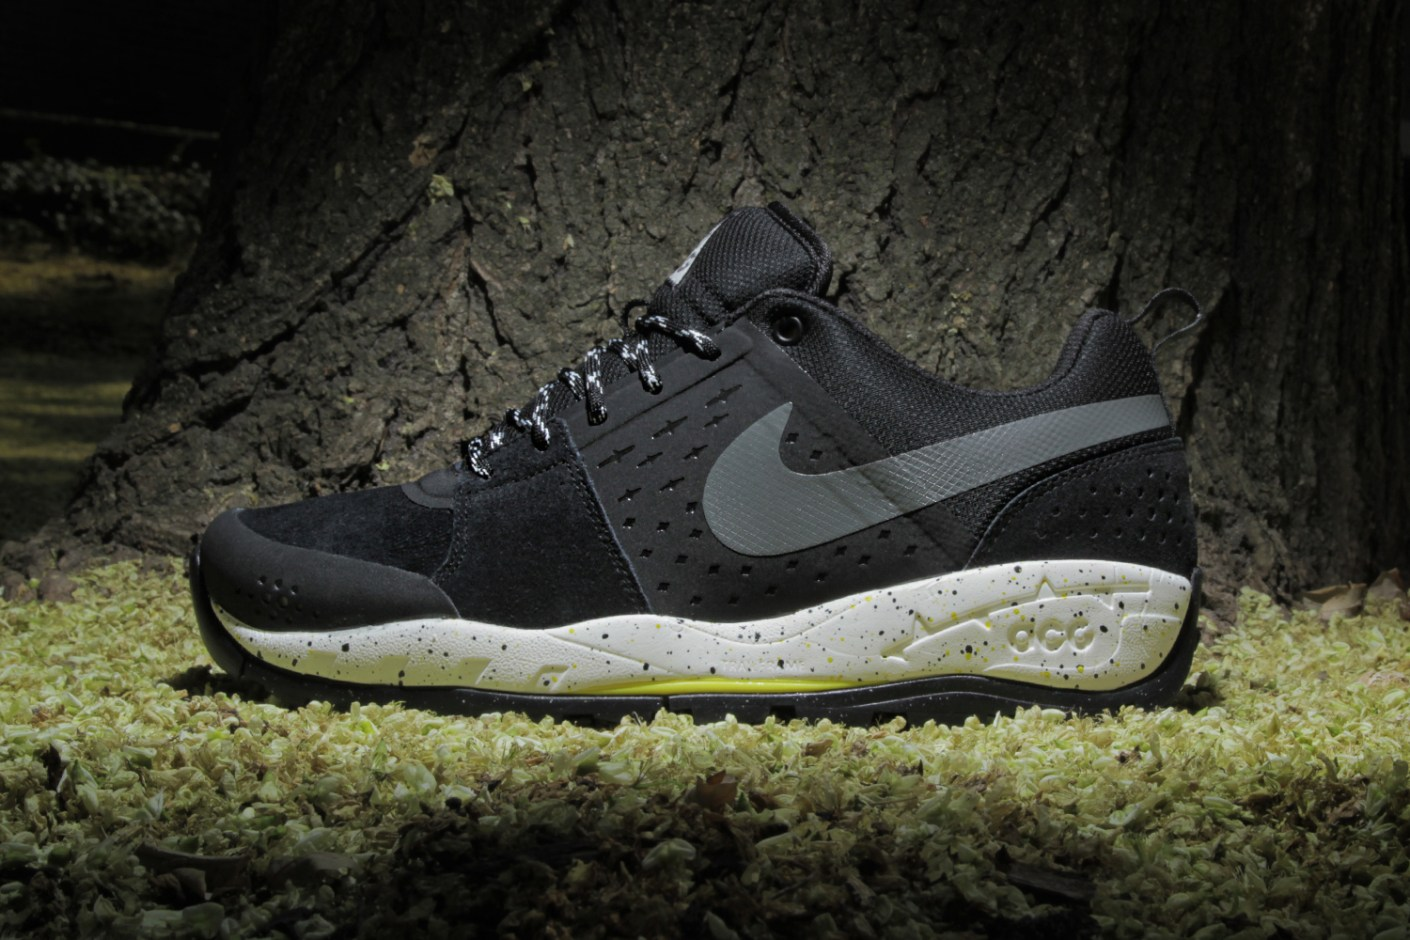 nike-acg-air-alder-low-1.jpg?w=1410